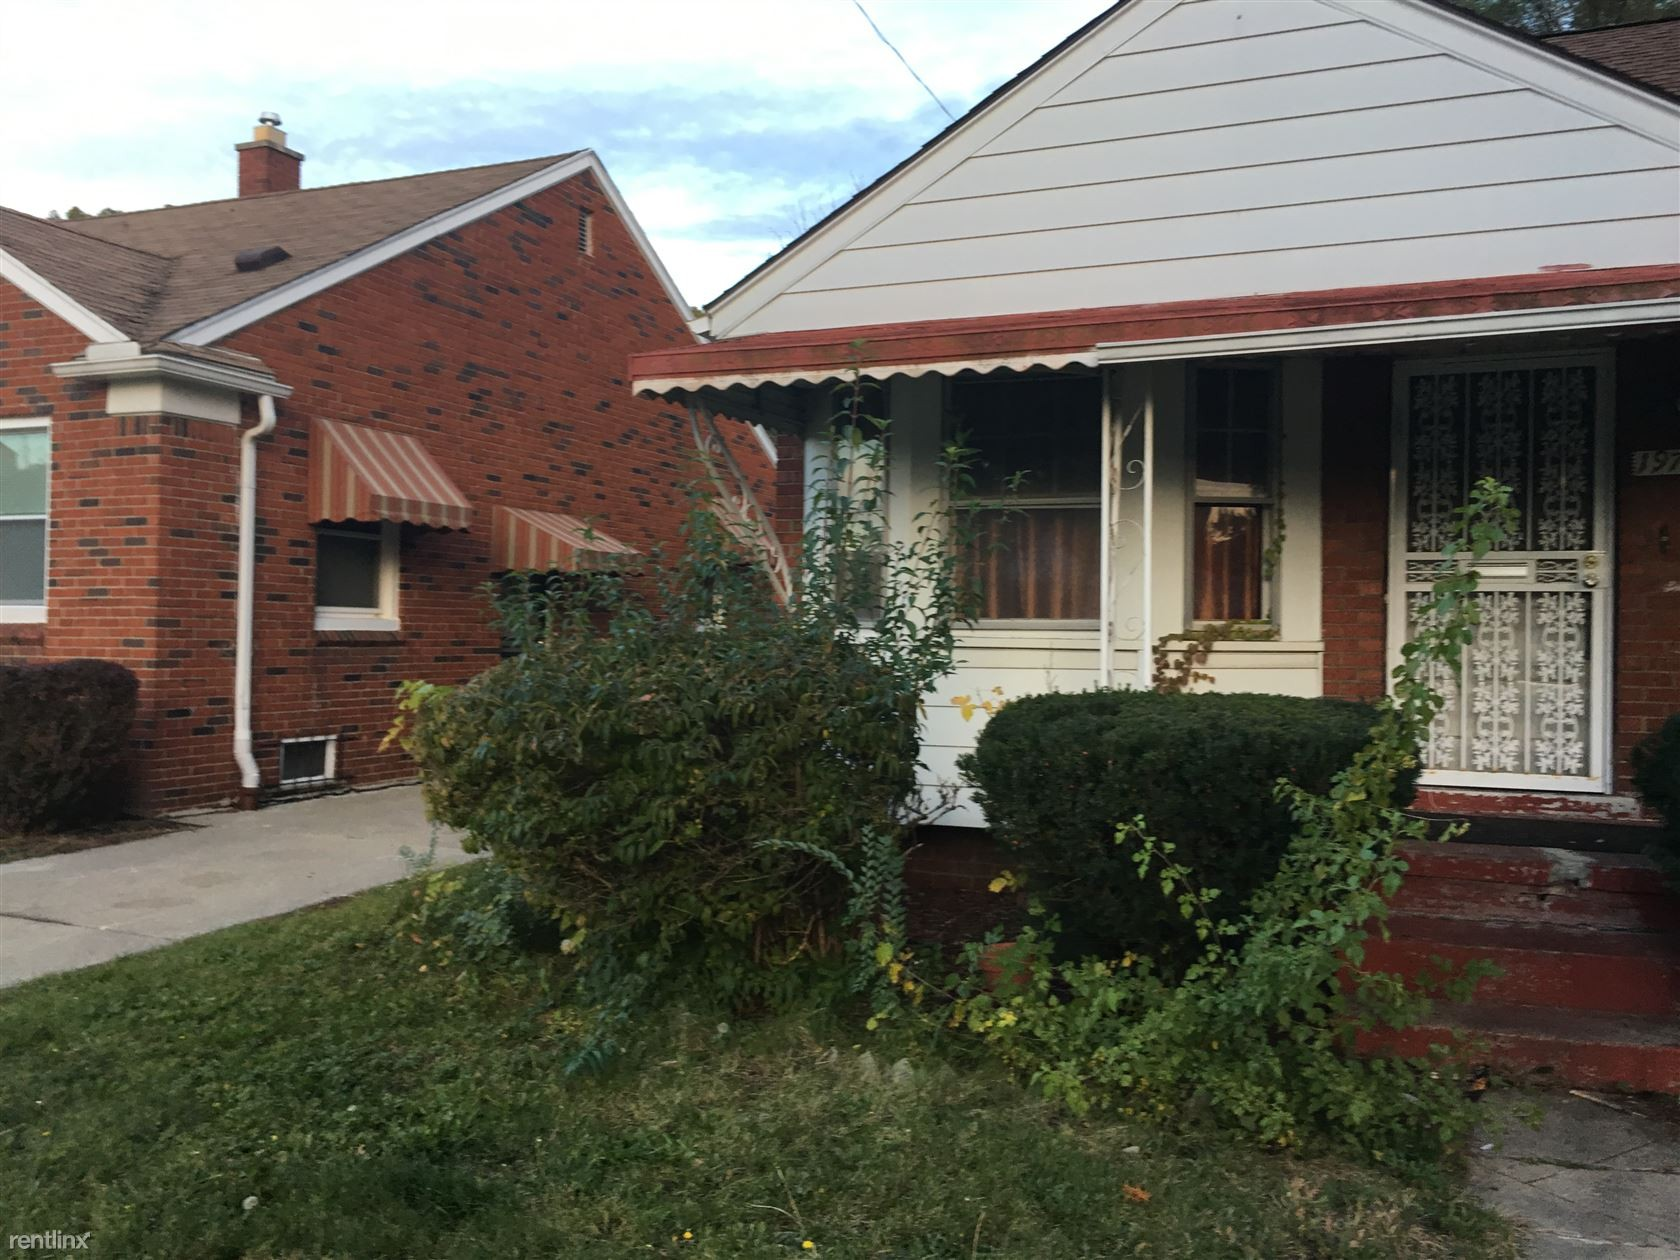 19758 Prairie St Detroit Mi 48221 2 Bedroom House For Rent For 750 Month Zumper